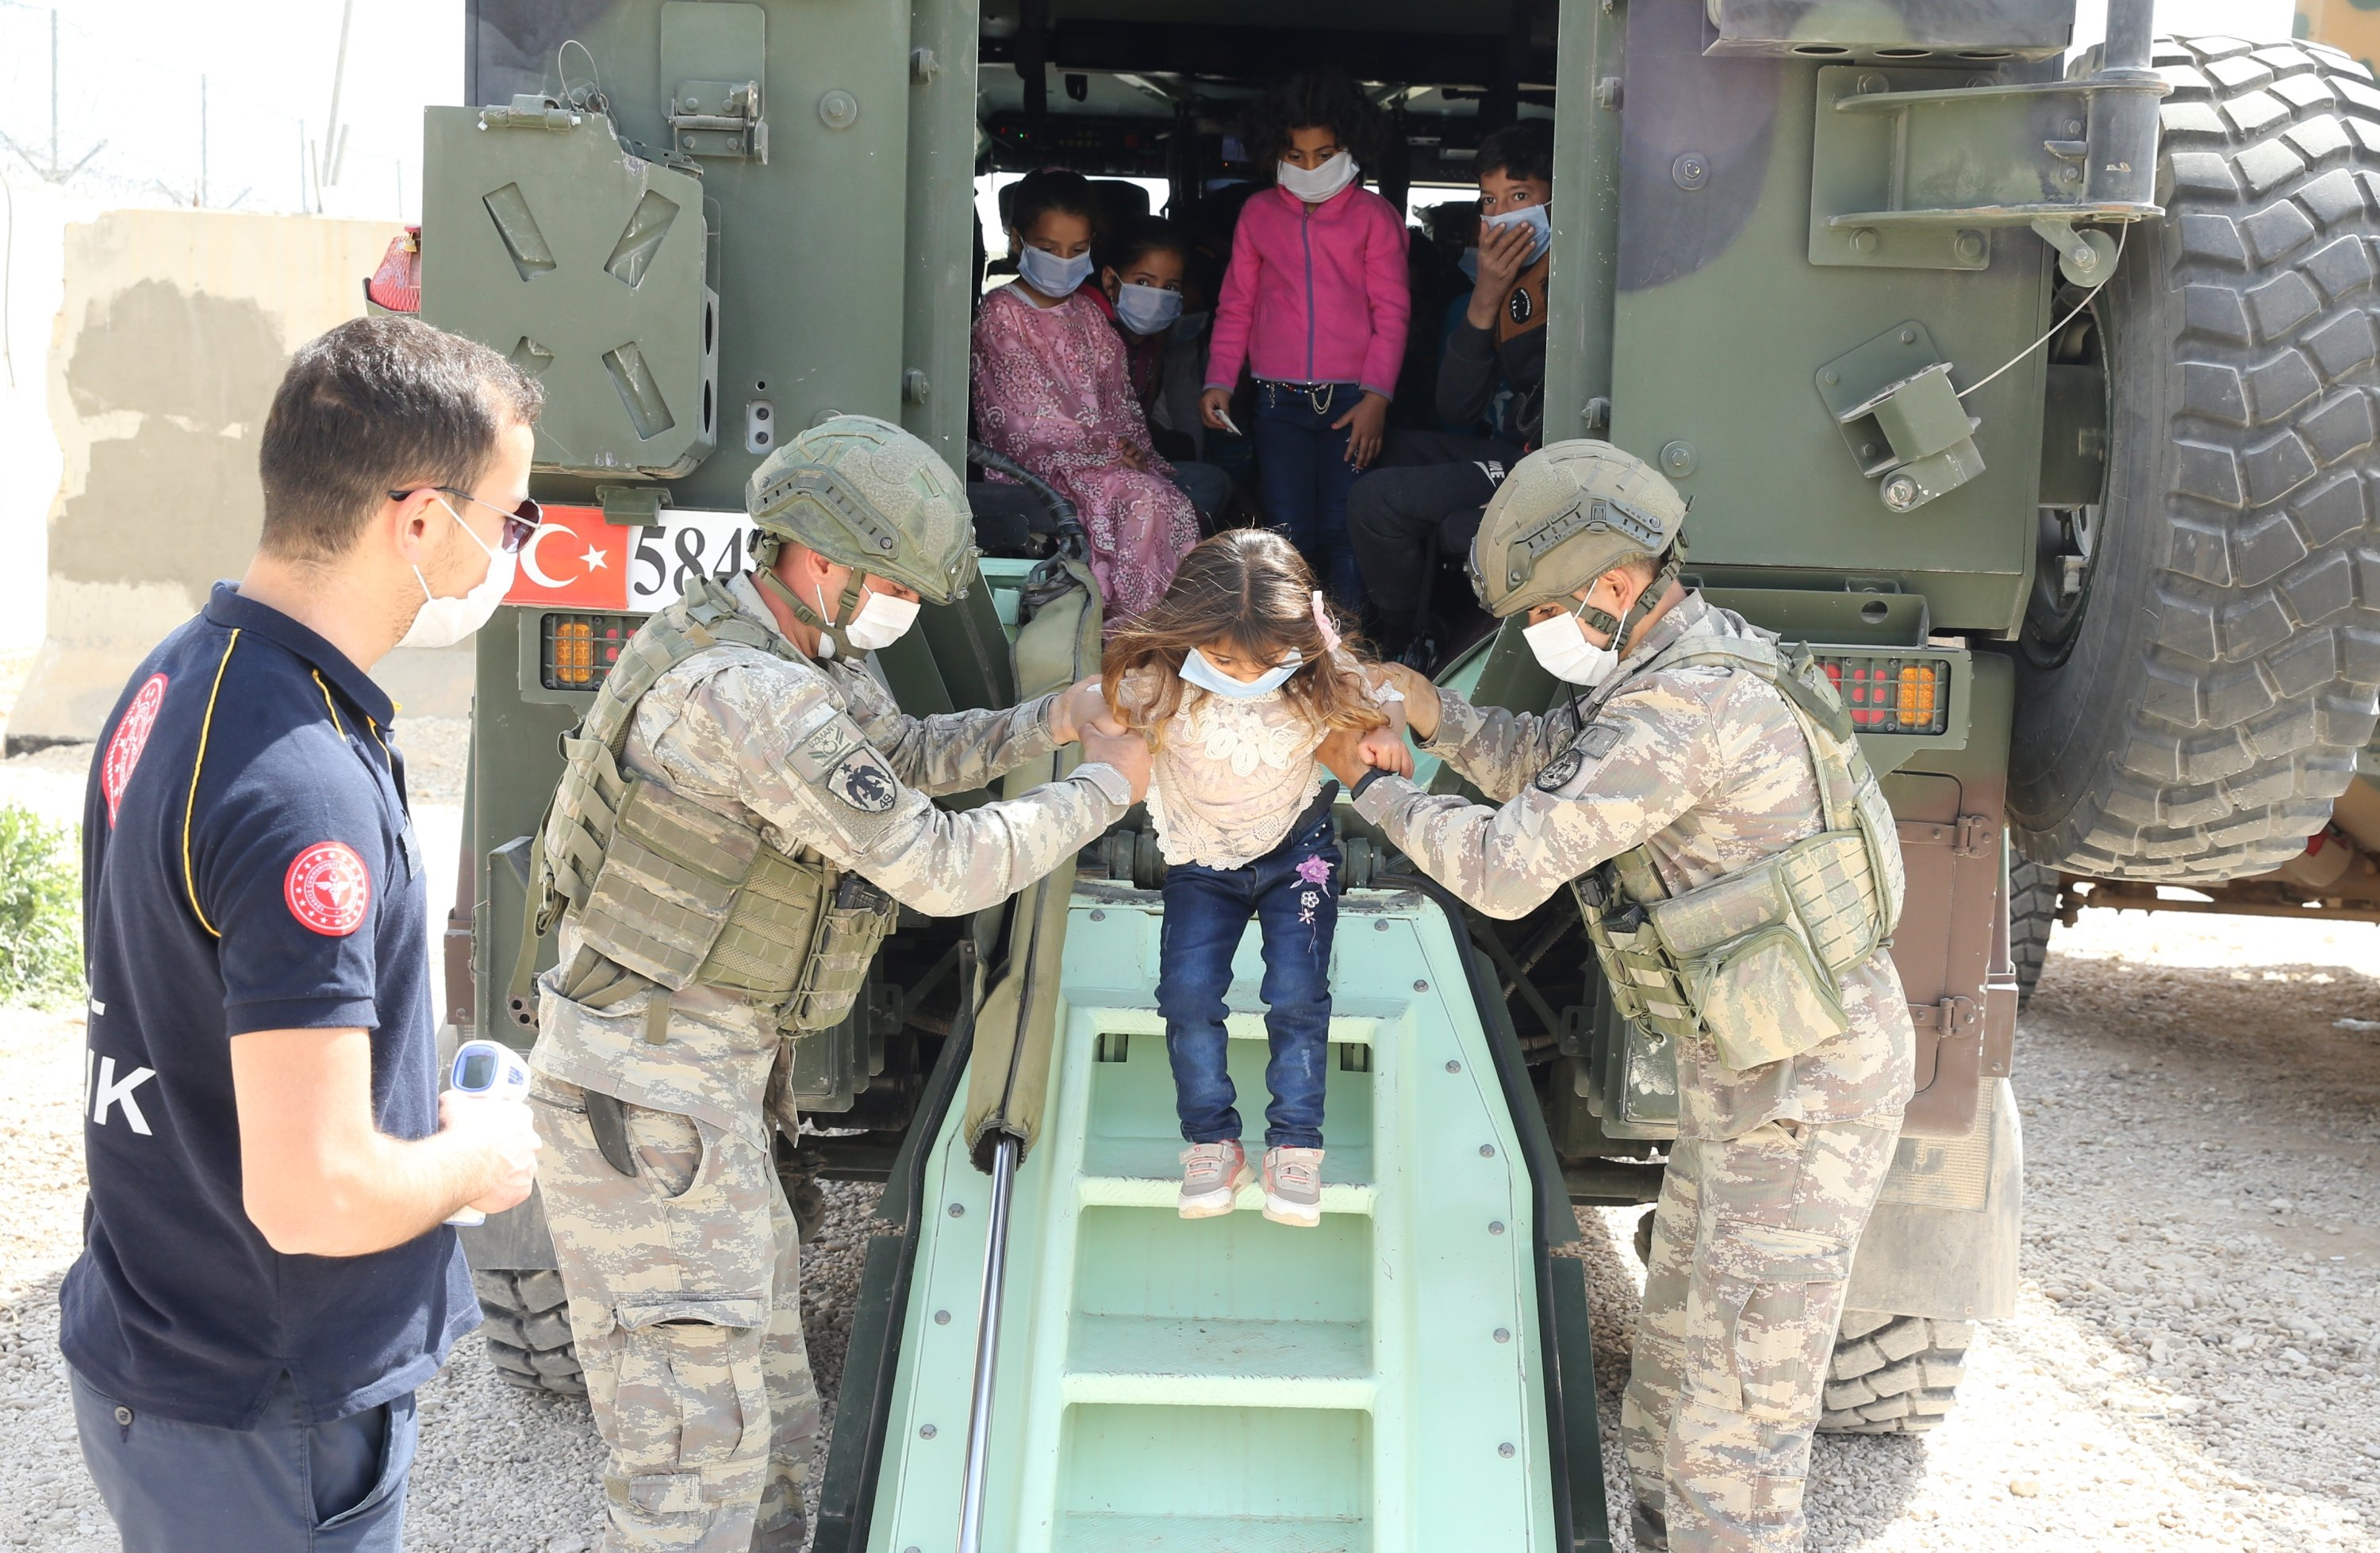 Turkish soldiers help a Syrian child to get off an armored vehicle for a daulong trip in Mardin, Turkey, April 28, 2021. (AA)